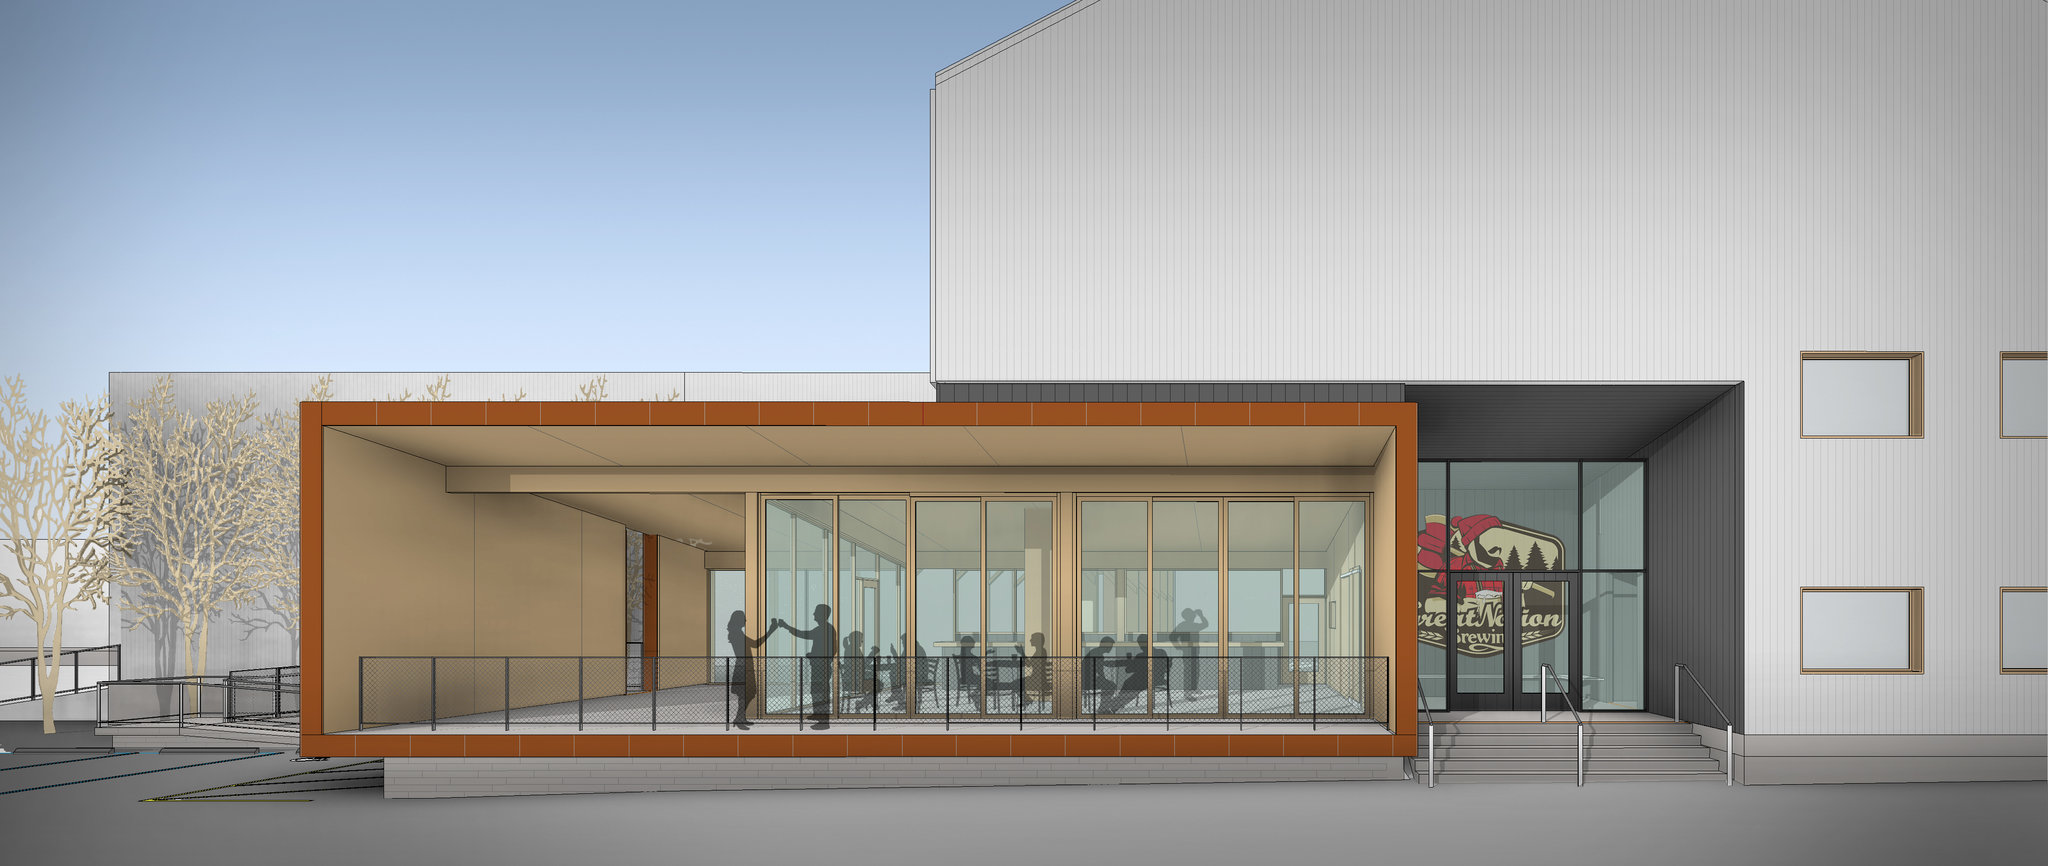 image of the forthcoming Great Notion Brewing location in Northwest Portland courtesy of ZGF Architects